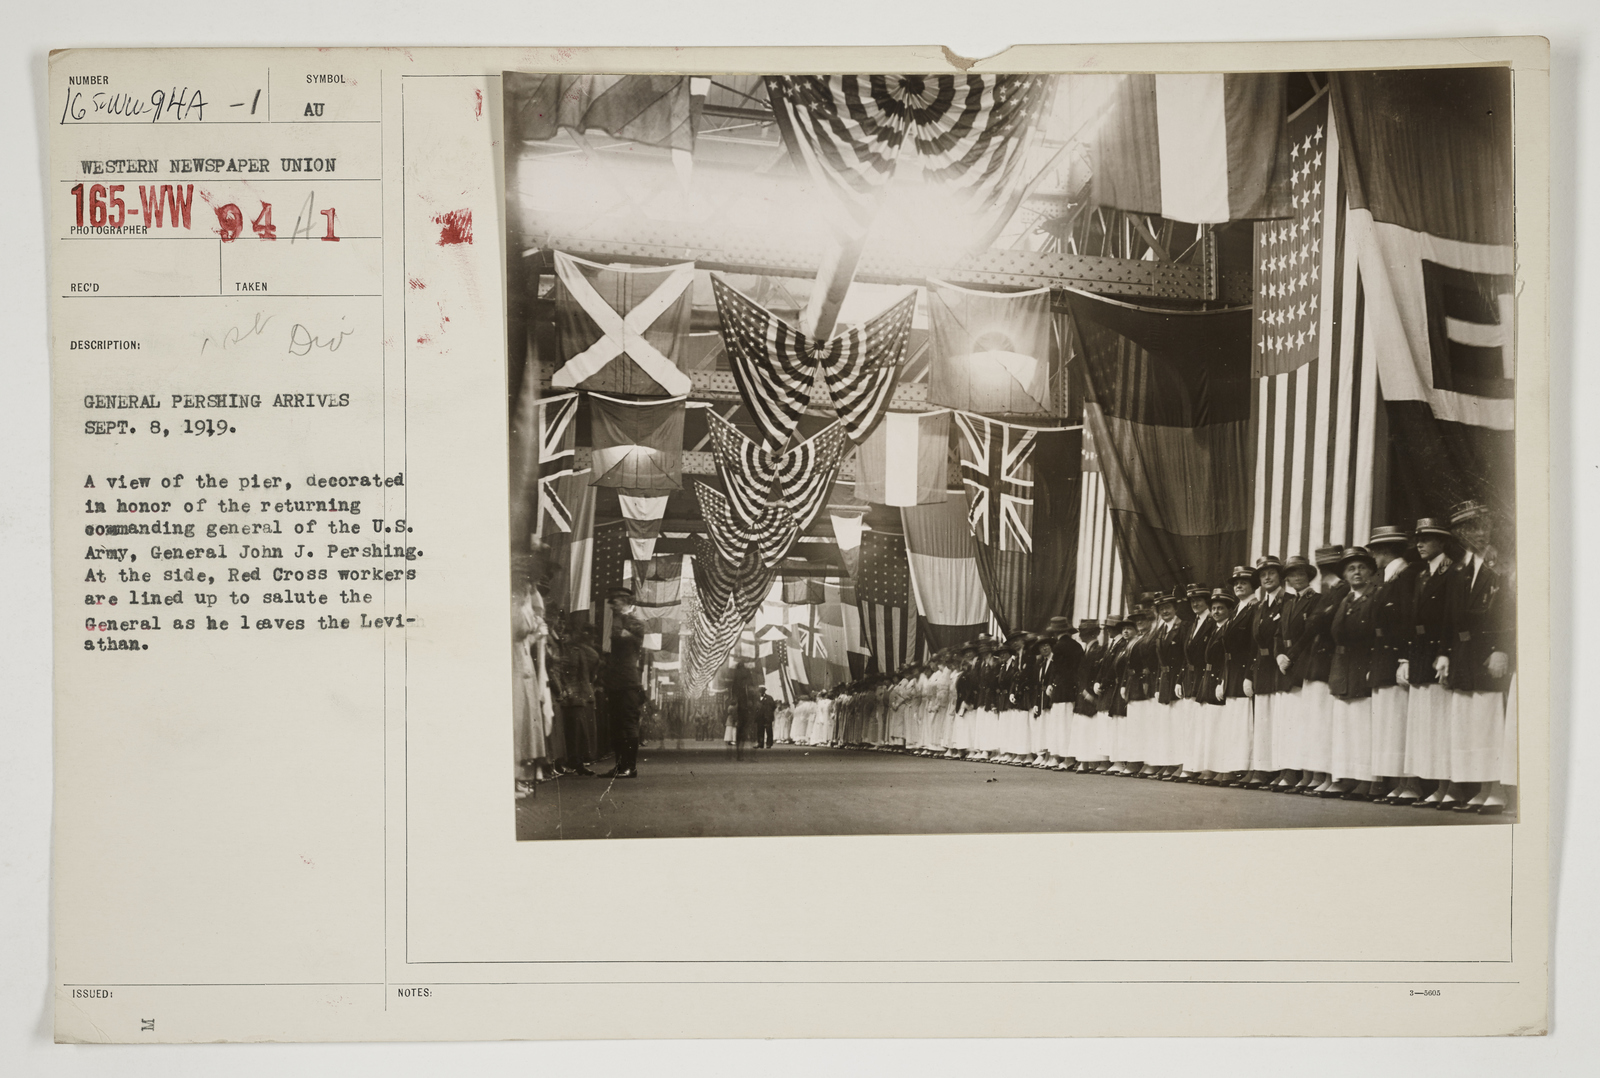 Ceremonies - Salutes and Parades - New York - General Pershing arrives, September 8, 1919